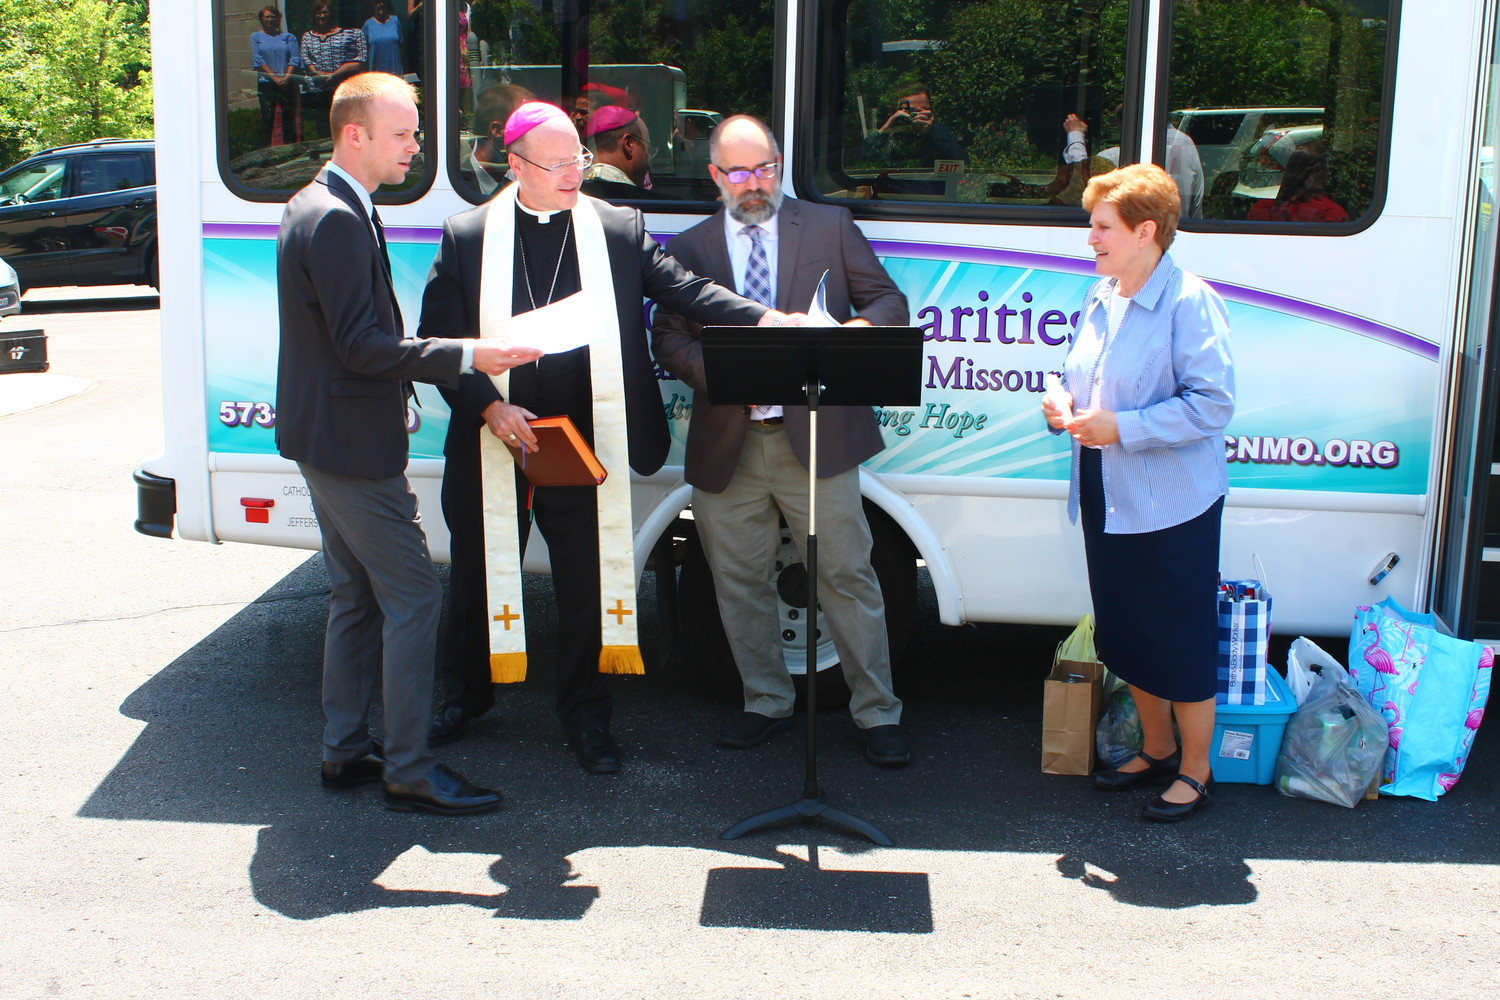 Jake Seifert, left, mission advancement director for Catholic Charities of Central and Northern Missouri (CCCNM); Executive Director Dan Lester; and Sister Kathleen Wegman SSND, chancellor of the Jefferson City diocese, join Bishop W. Shawn McKnight at a ceremony to bless CCCNM's new Mobile Resource Bus outside the Alphonse J. Schwartze Memorial Catholic Center on June 6.